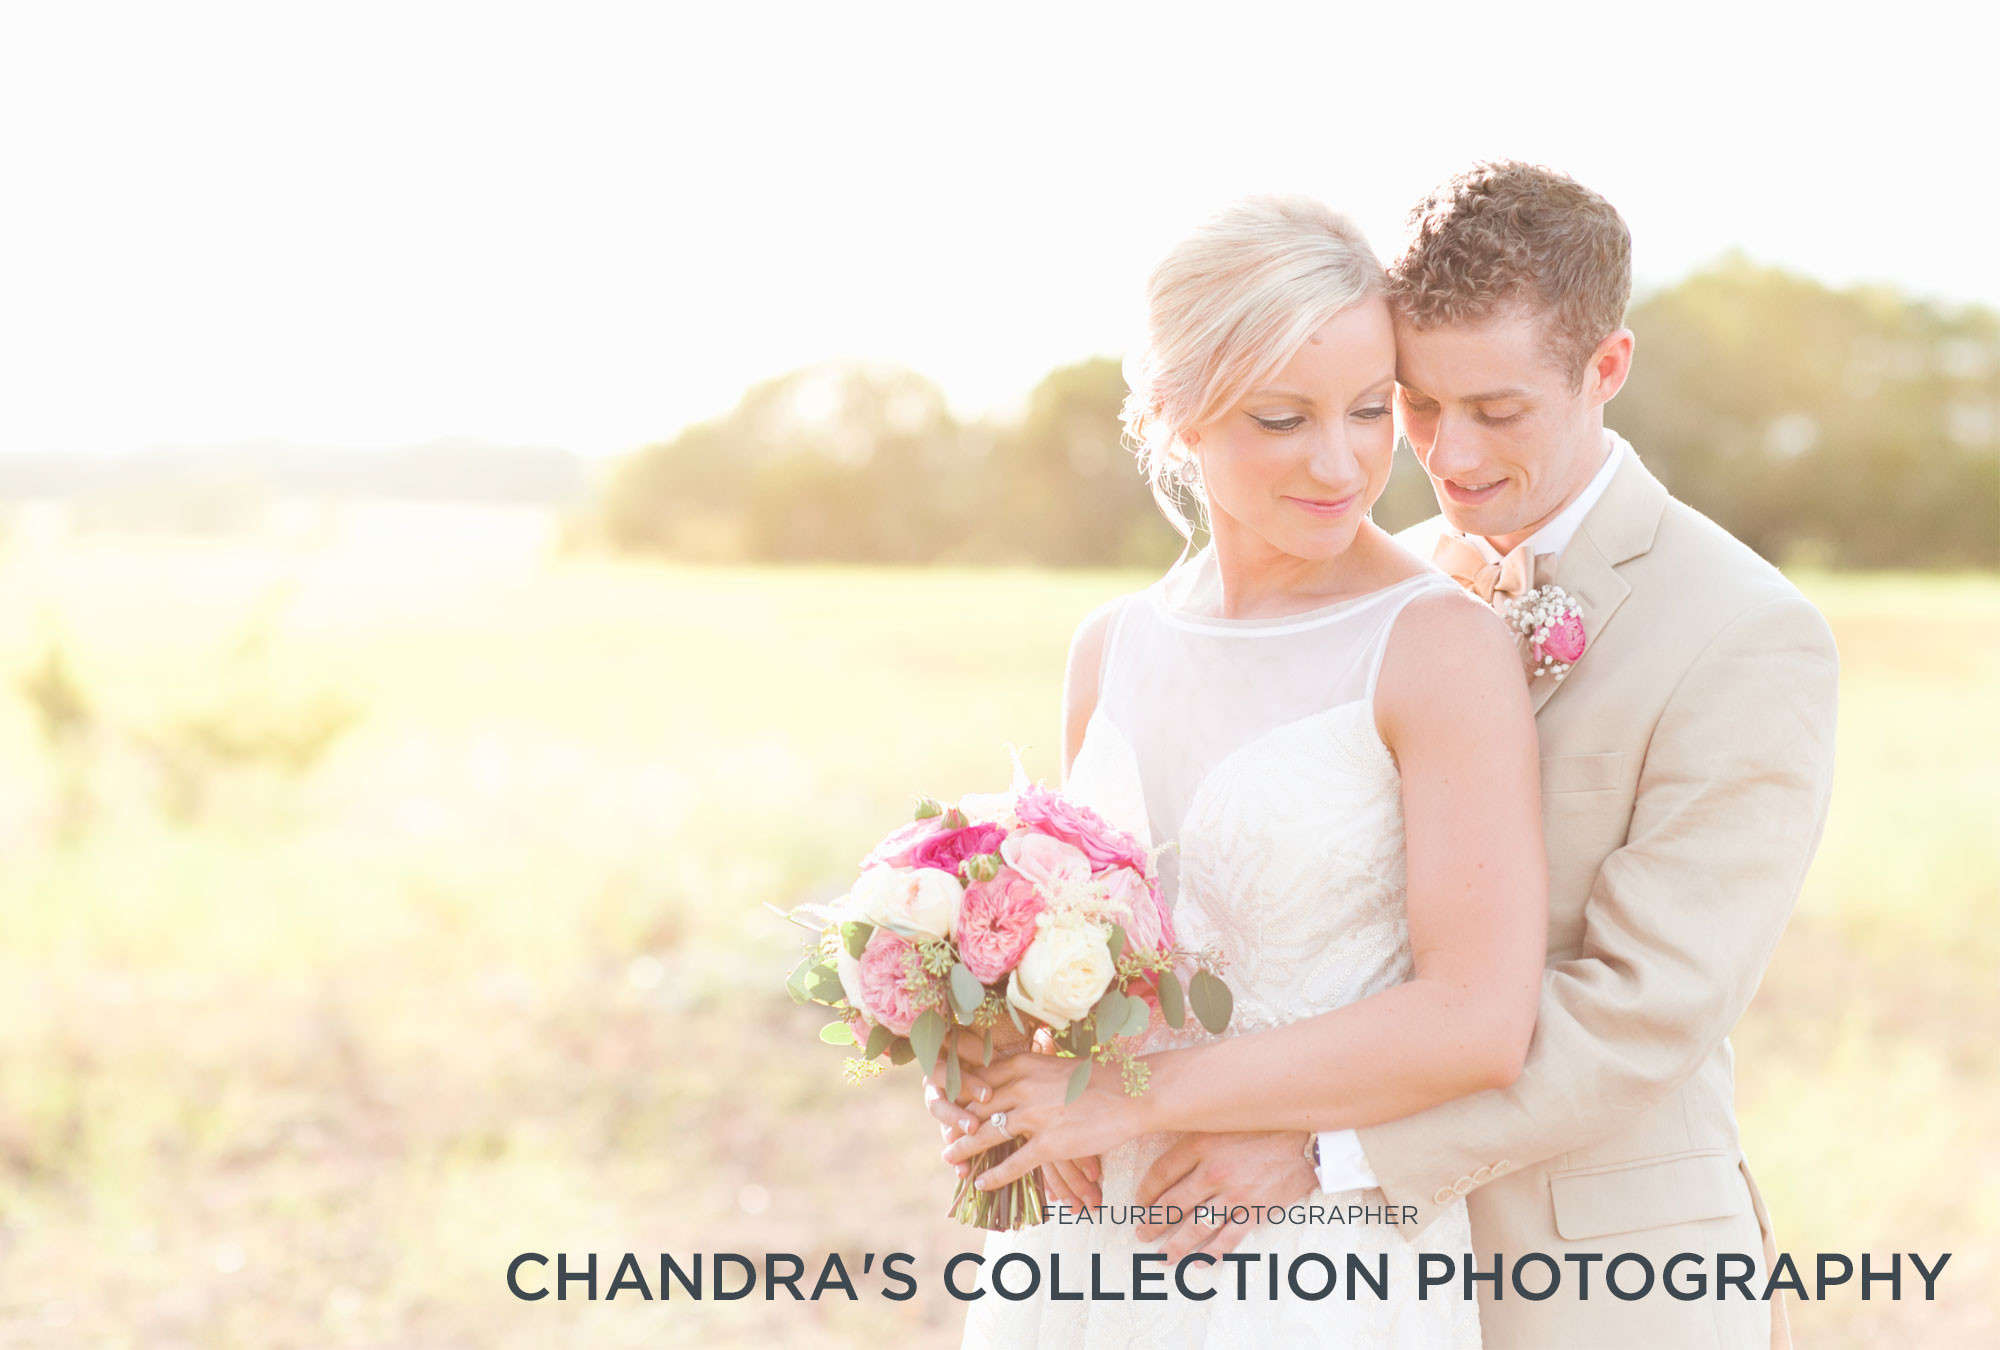 Chandra's Collection Photography